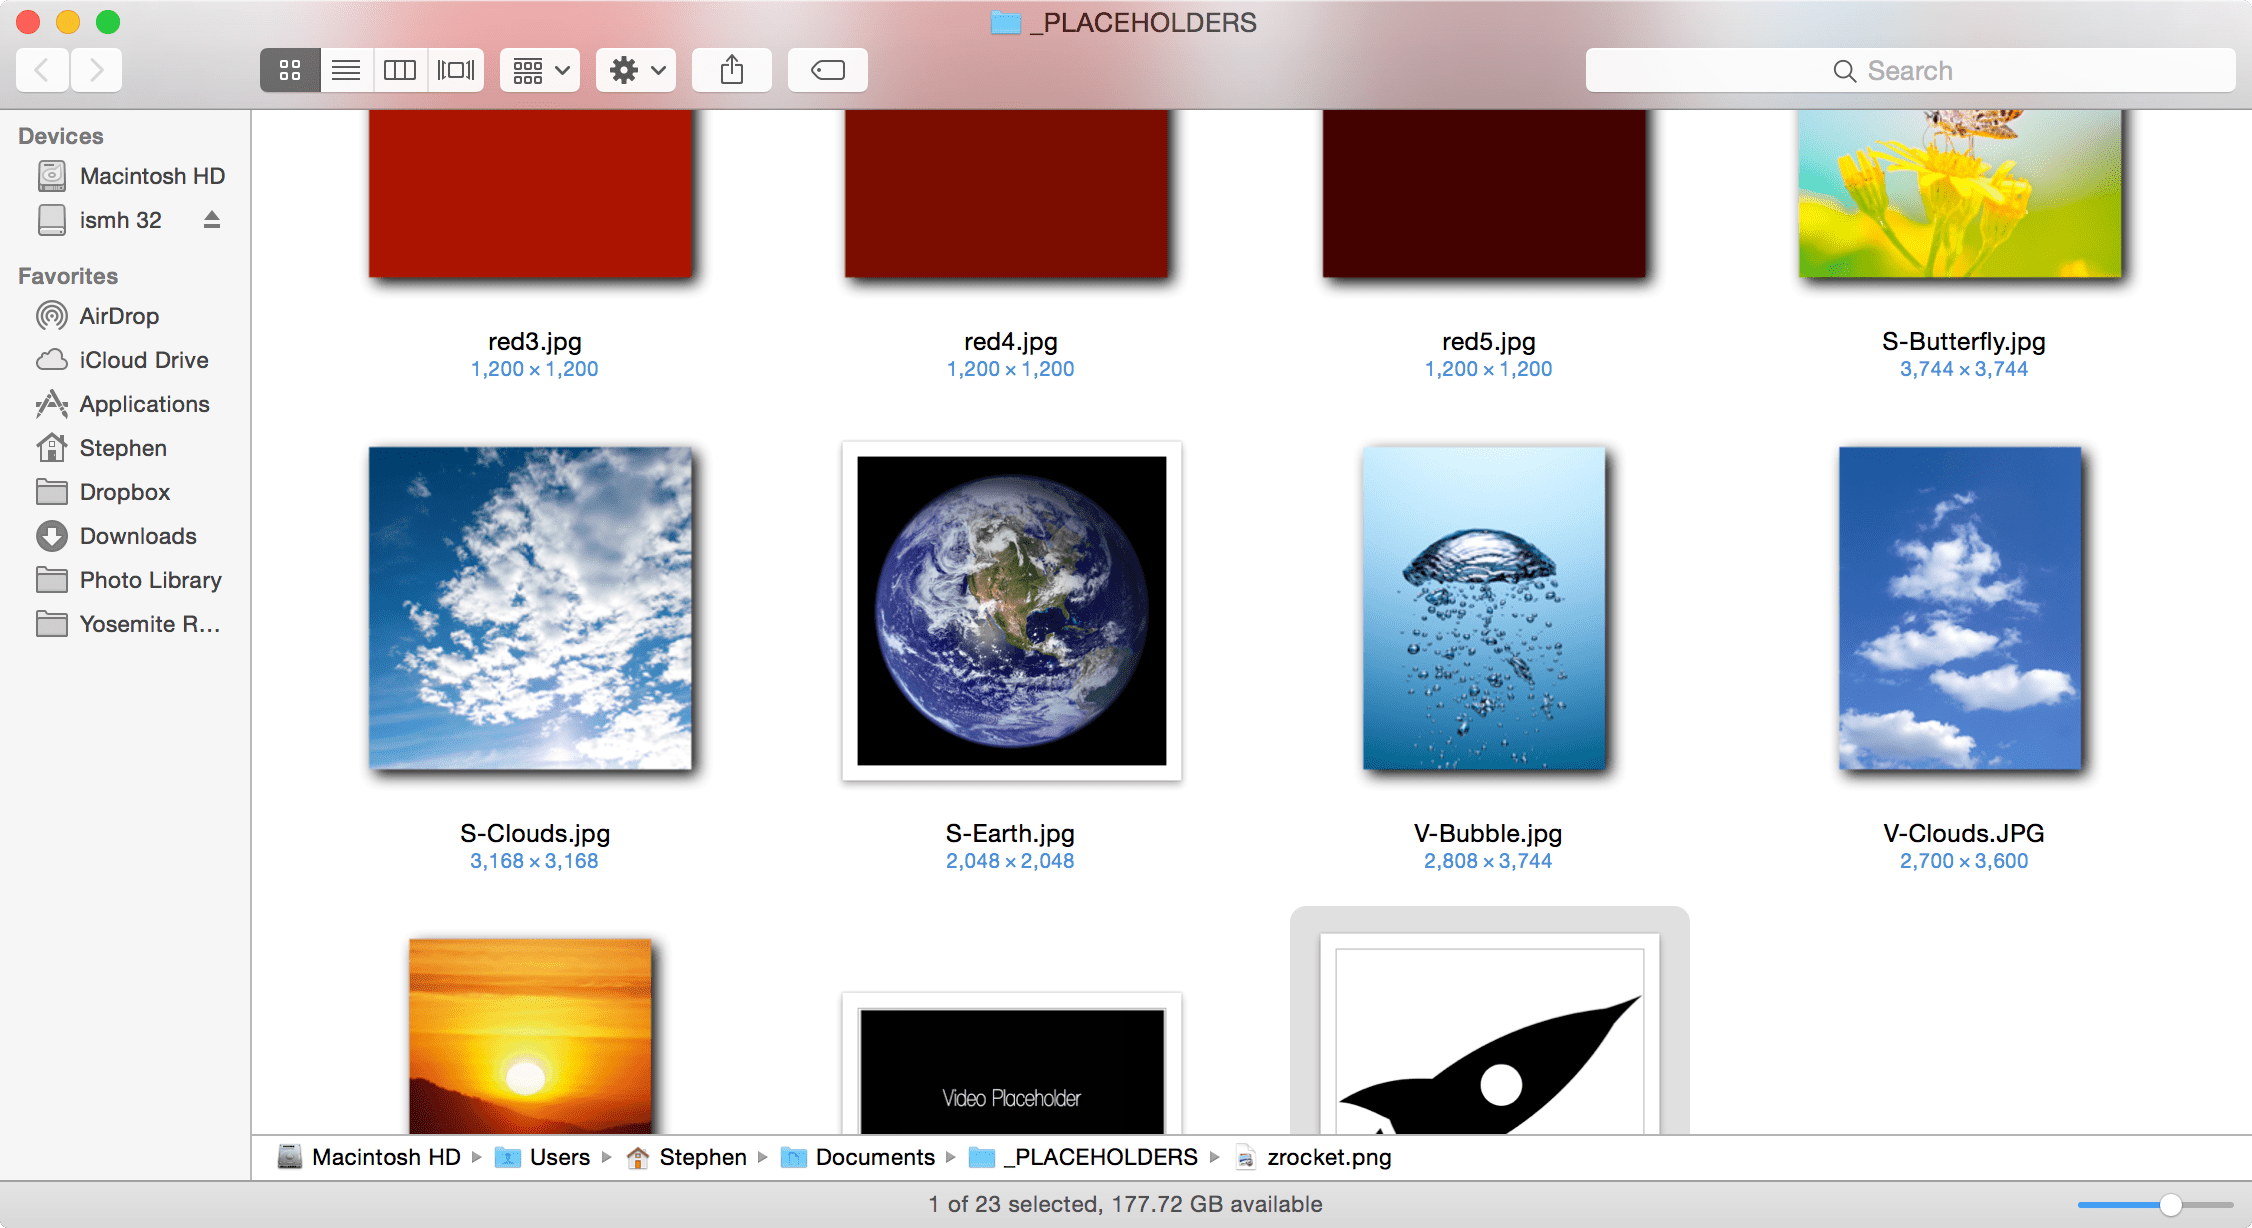 The Finder title bar picks up the tint of the content within the window